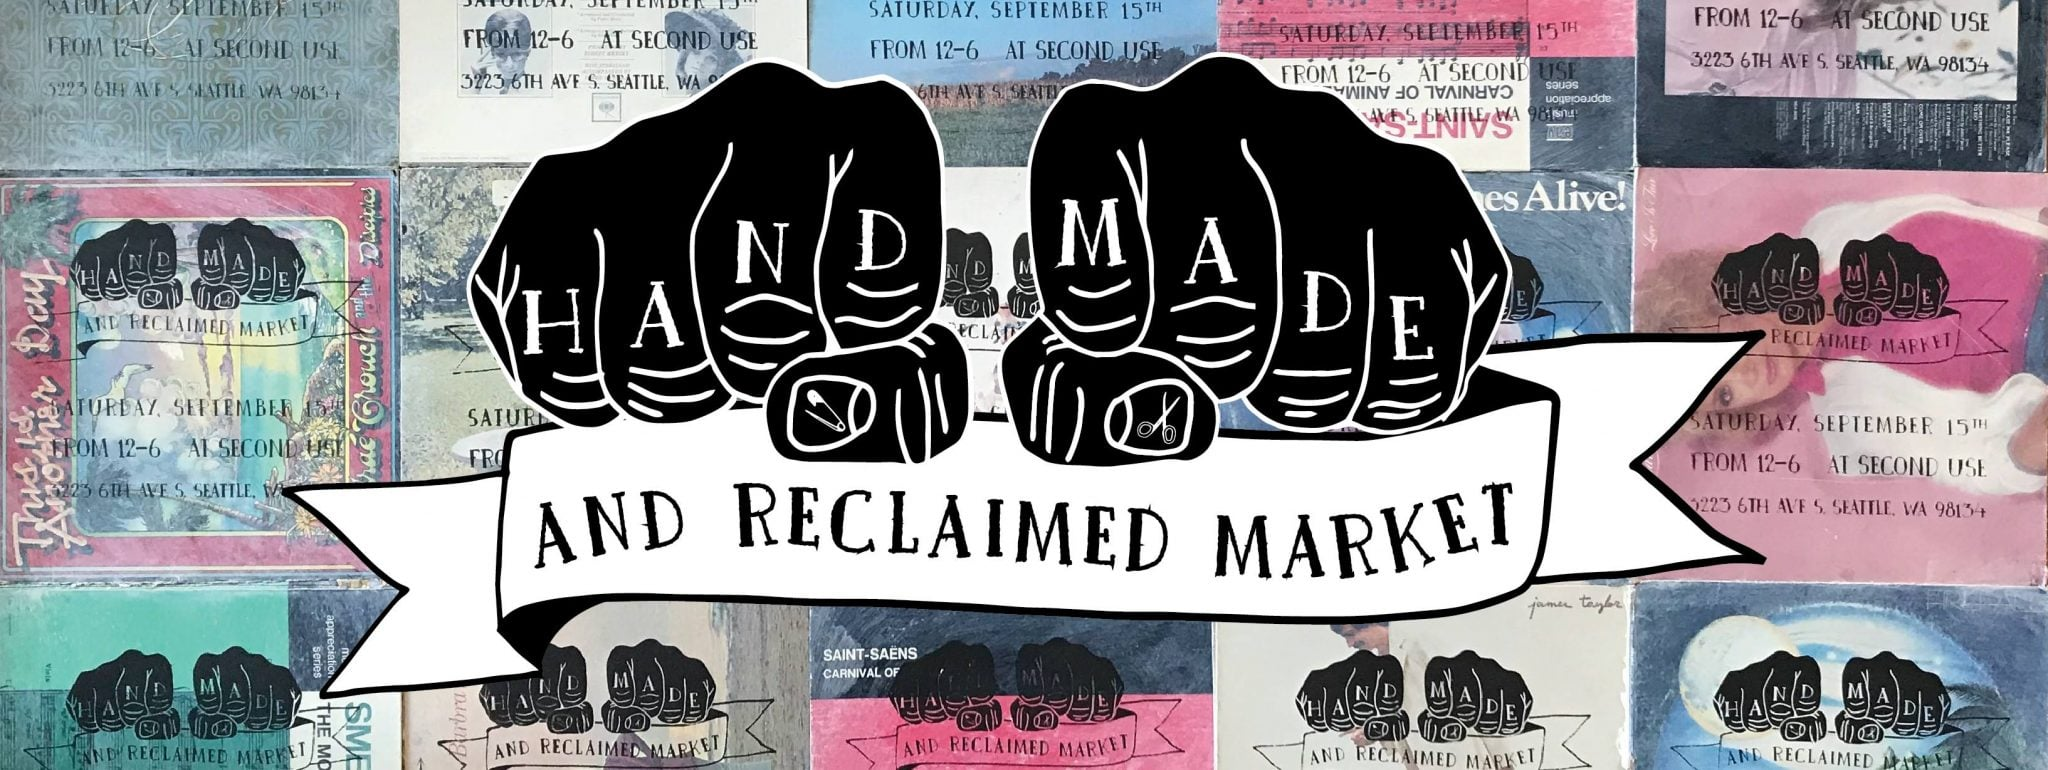 Second Use Seattle >> 2018 Handmade Reclaimed Market Vendor Preview Second Use